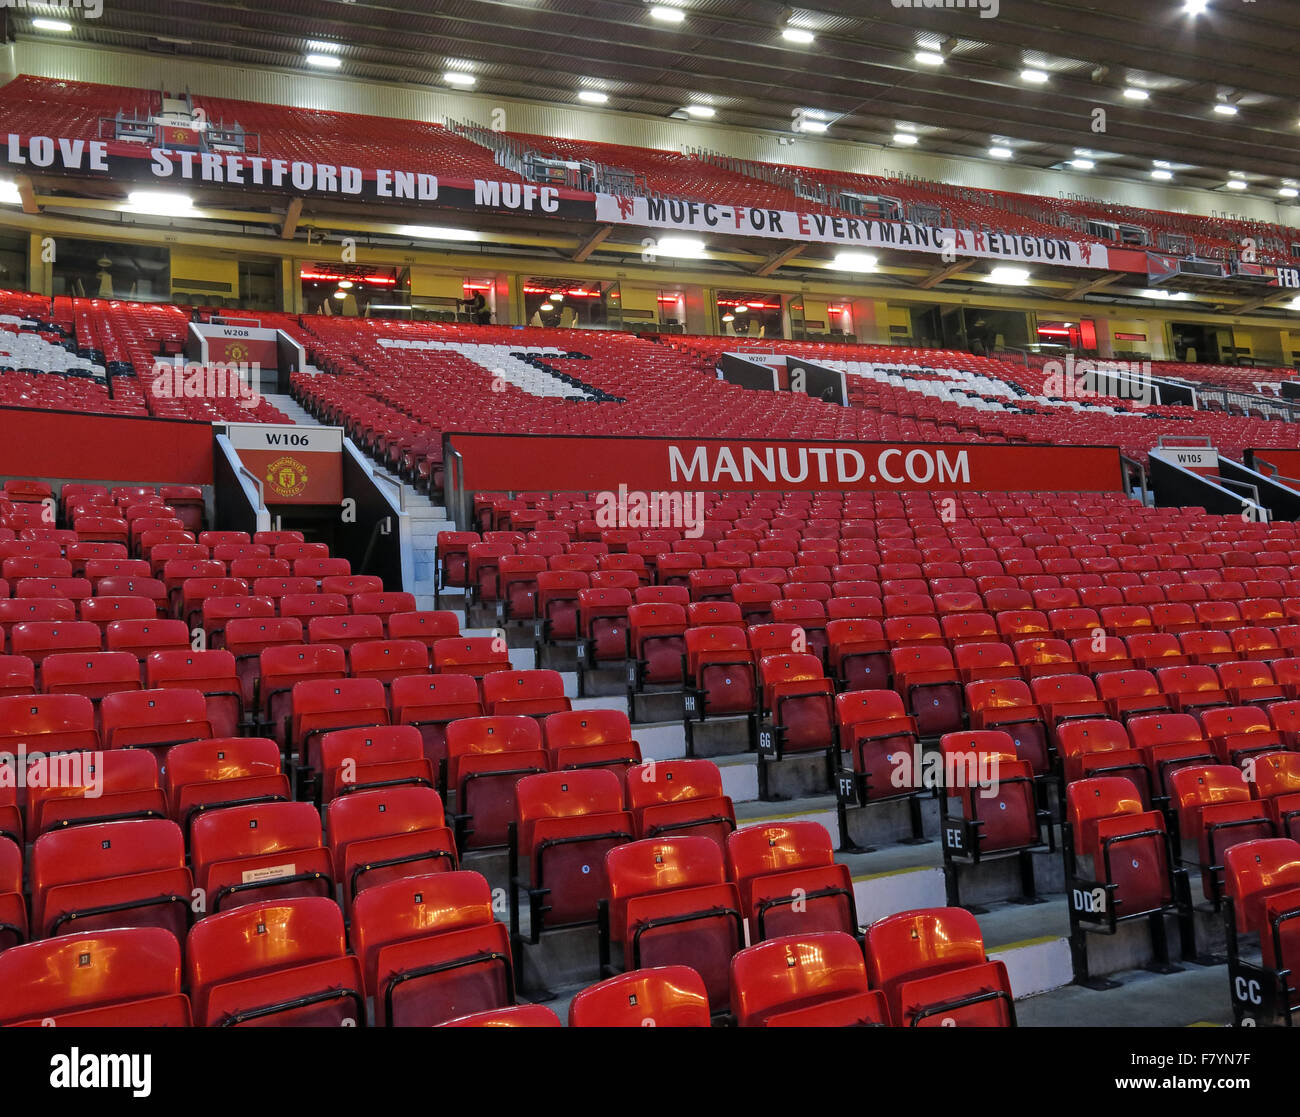 stadium,MUFC,England,UK,GB,English,Premier,League,Manutd,Manutd.com,red,seats,seat,seating,Manchester United,Stretford End,Old Trafford,Great Britain,GoTonySmith,ManchesterUnited,MUFC,Mancester,MU,old,Trafford,theatre,of,dreams,Lancs,Lancashire,RedDevils,Red,Devils,Football,Club,FC,allseater,all-seater,association,away,balls,betting,britain,british,champions,changing,coaches,competition,culture,cups,division,documentary,dressing,england,english,fans,fixtures,game,goals,ground,heritage,history,home,homesoffootball,hooliganism,justice,kick,kick-off,league,managers,midweek,pitch,players,police,premier,promotion,referees,regulations,relegation,results,room,roots,rules,saturday,saturdays,scorers,season,seated,seater,seating,shinpads,shirt,shirts,sizes,sky,skysports,soccer,social,socks,sponsors,sport,stadia,stadium,standing,sundays,sunday,system,tables,team,terraces,tradition,trainers,Adidas,Puma,Buy Pictures of,Buy Images Of,Old Trafford,Theatre of Dreams,Theater of dreams,Red Devils